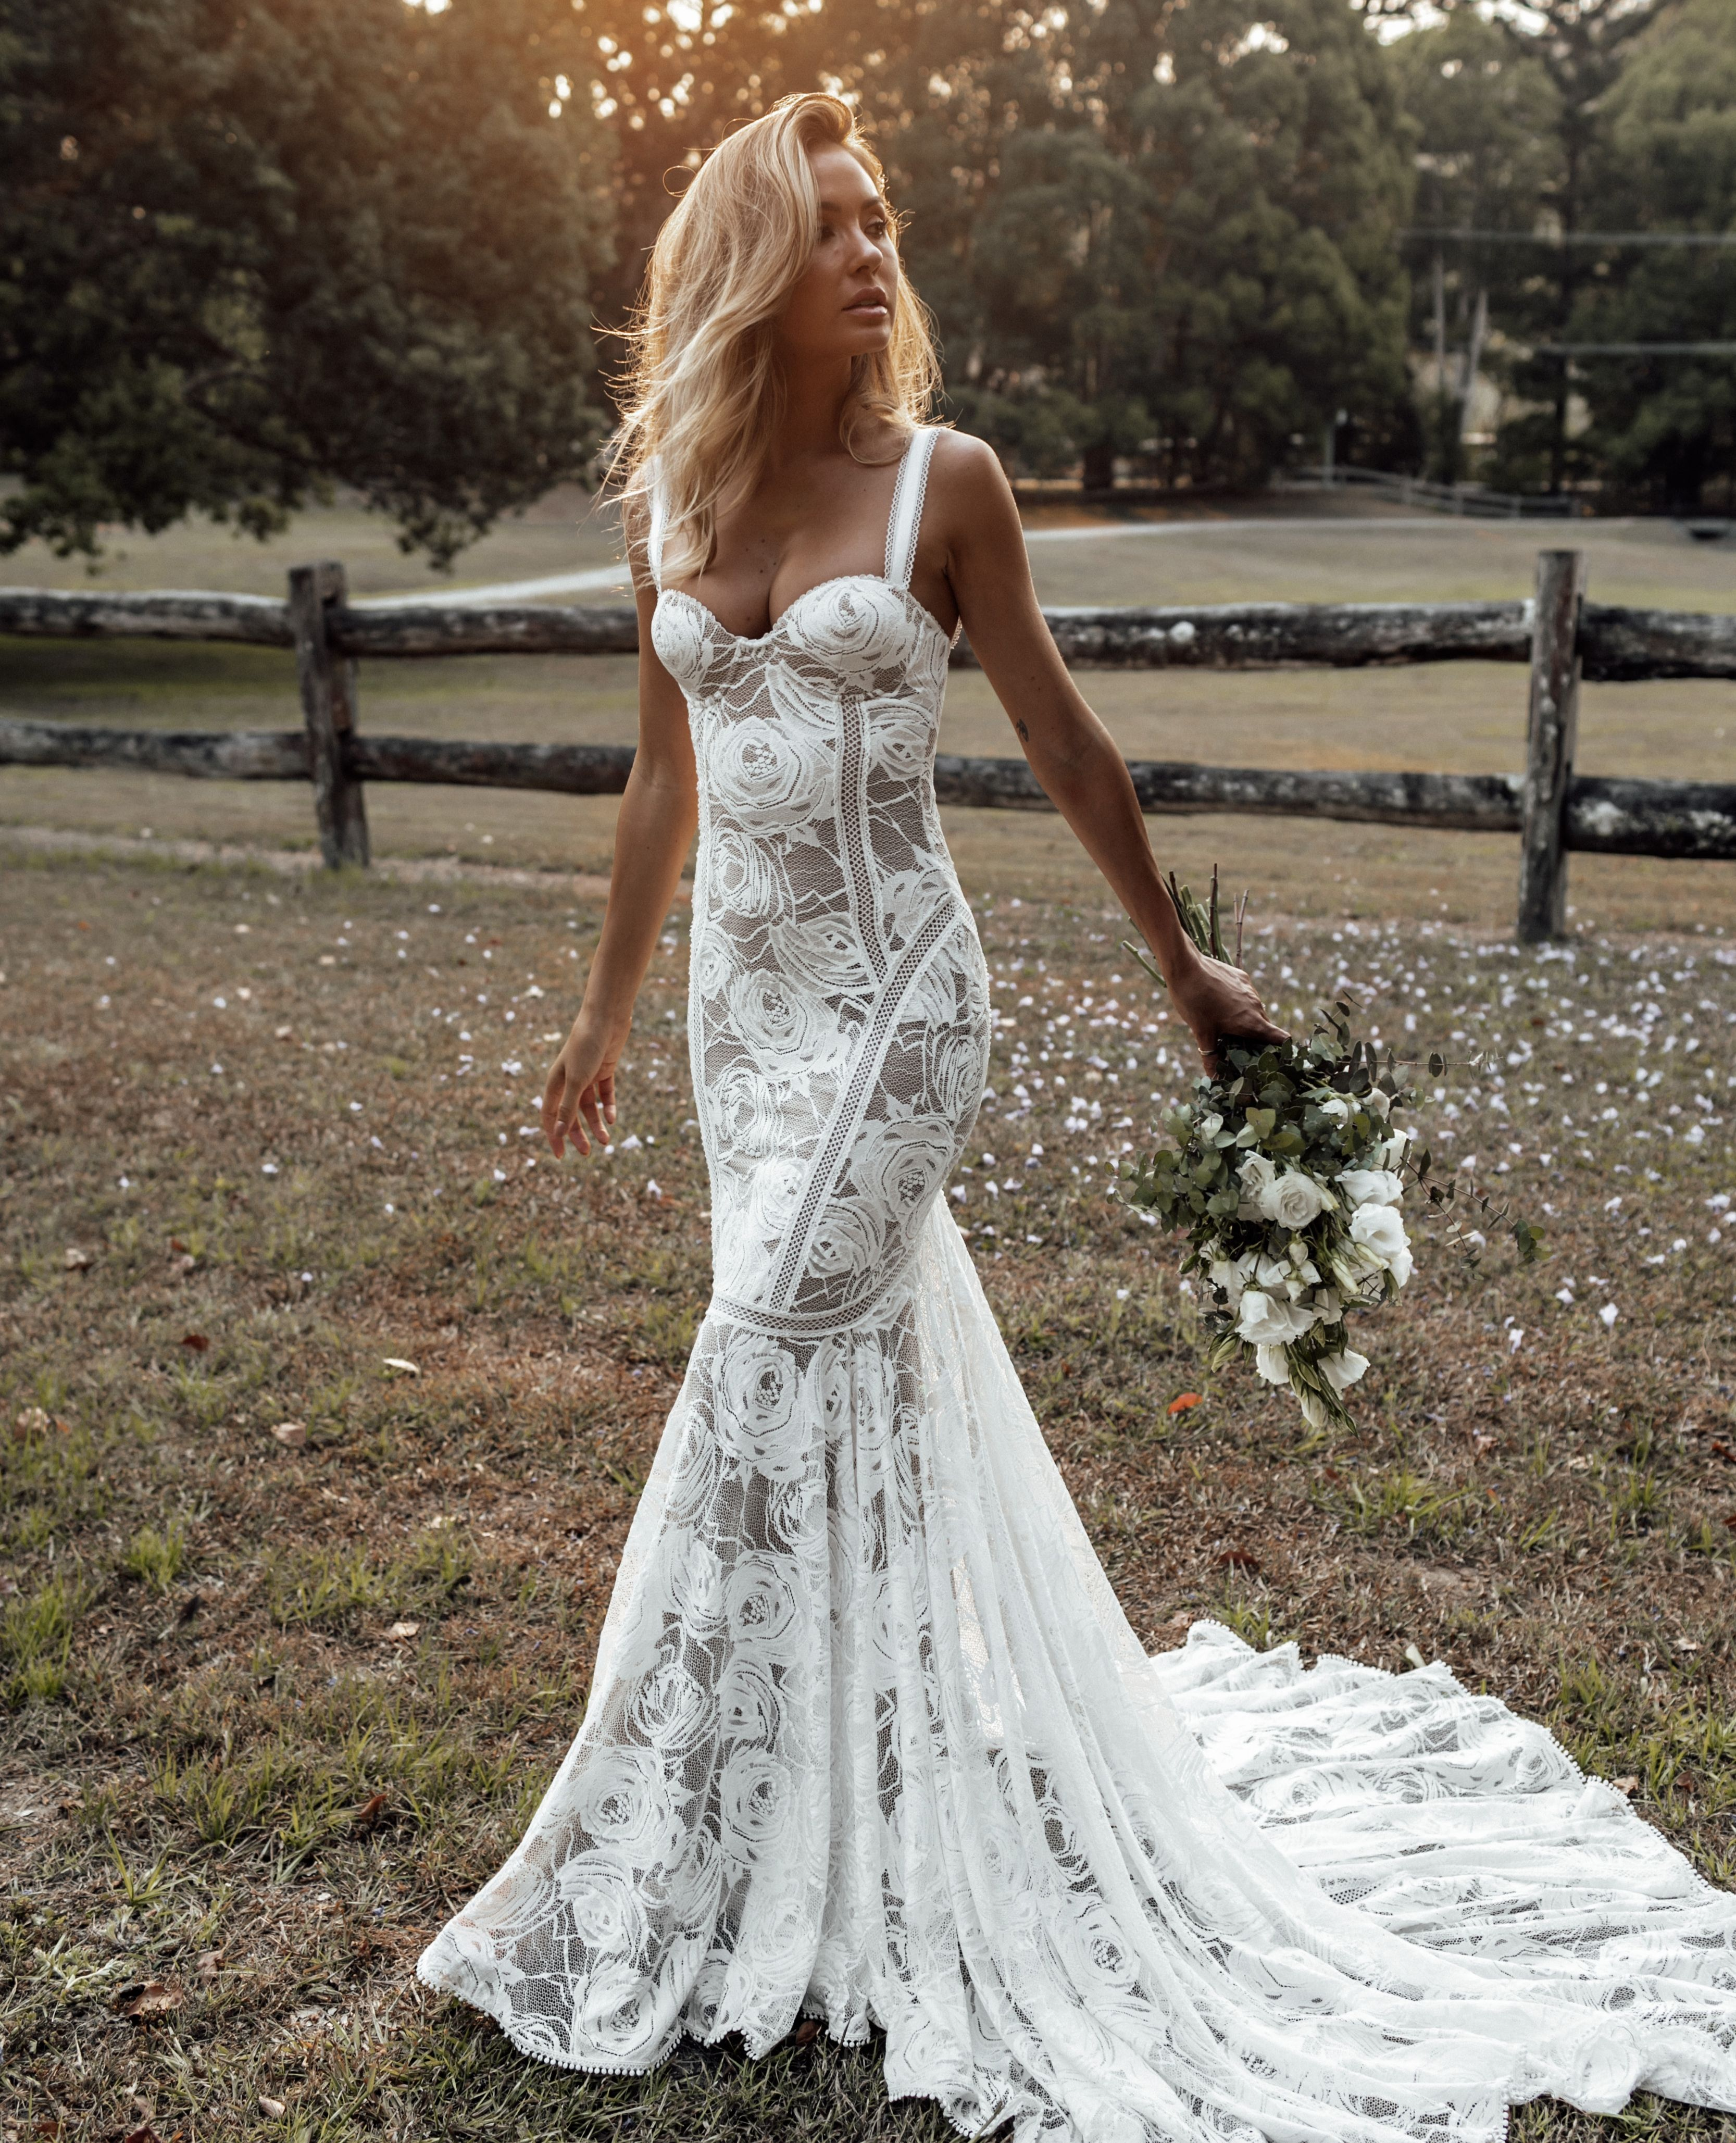 Palm Gown Lace Wedding Dress Grace Loves Lace In 2020 Country Style Wedding Dresses Wedding Dresses Mermaid Sweetheart Sophisticated Wedding Gown [ 4114 x 3333 Pixel ]